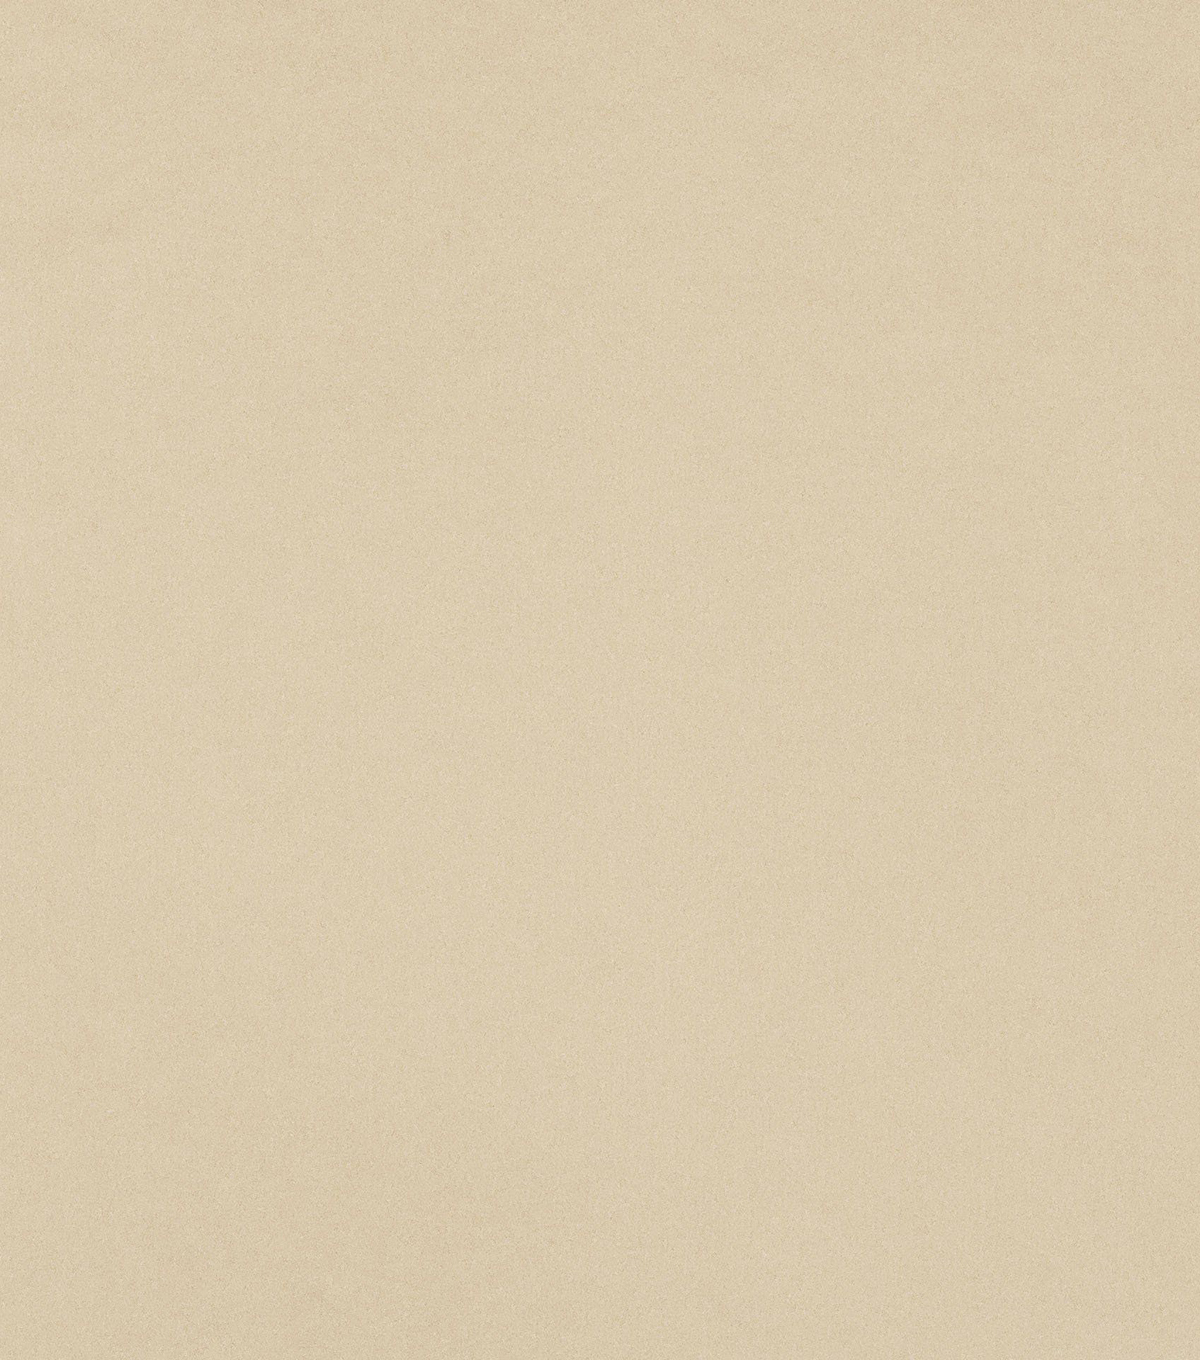 Home Decor 8\u0022x8\u0022 Fabric Swatch-Elite New Suede Cream